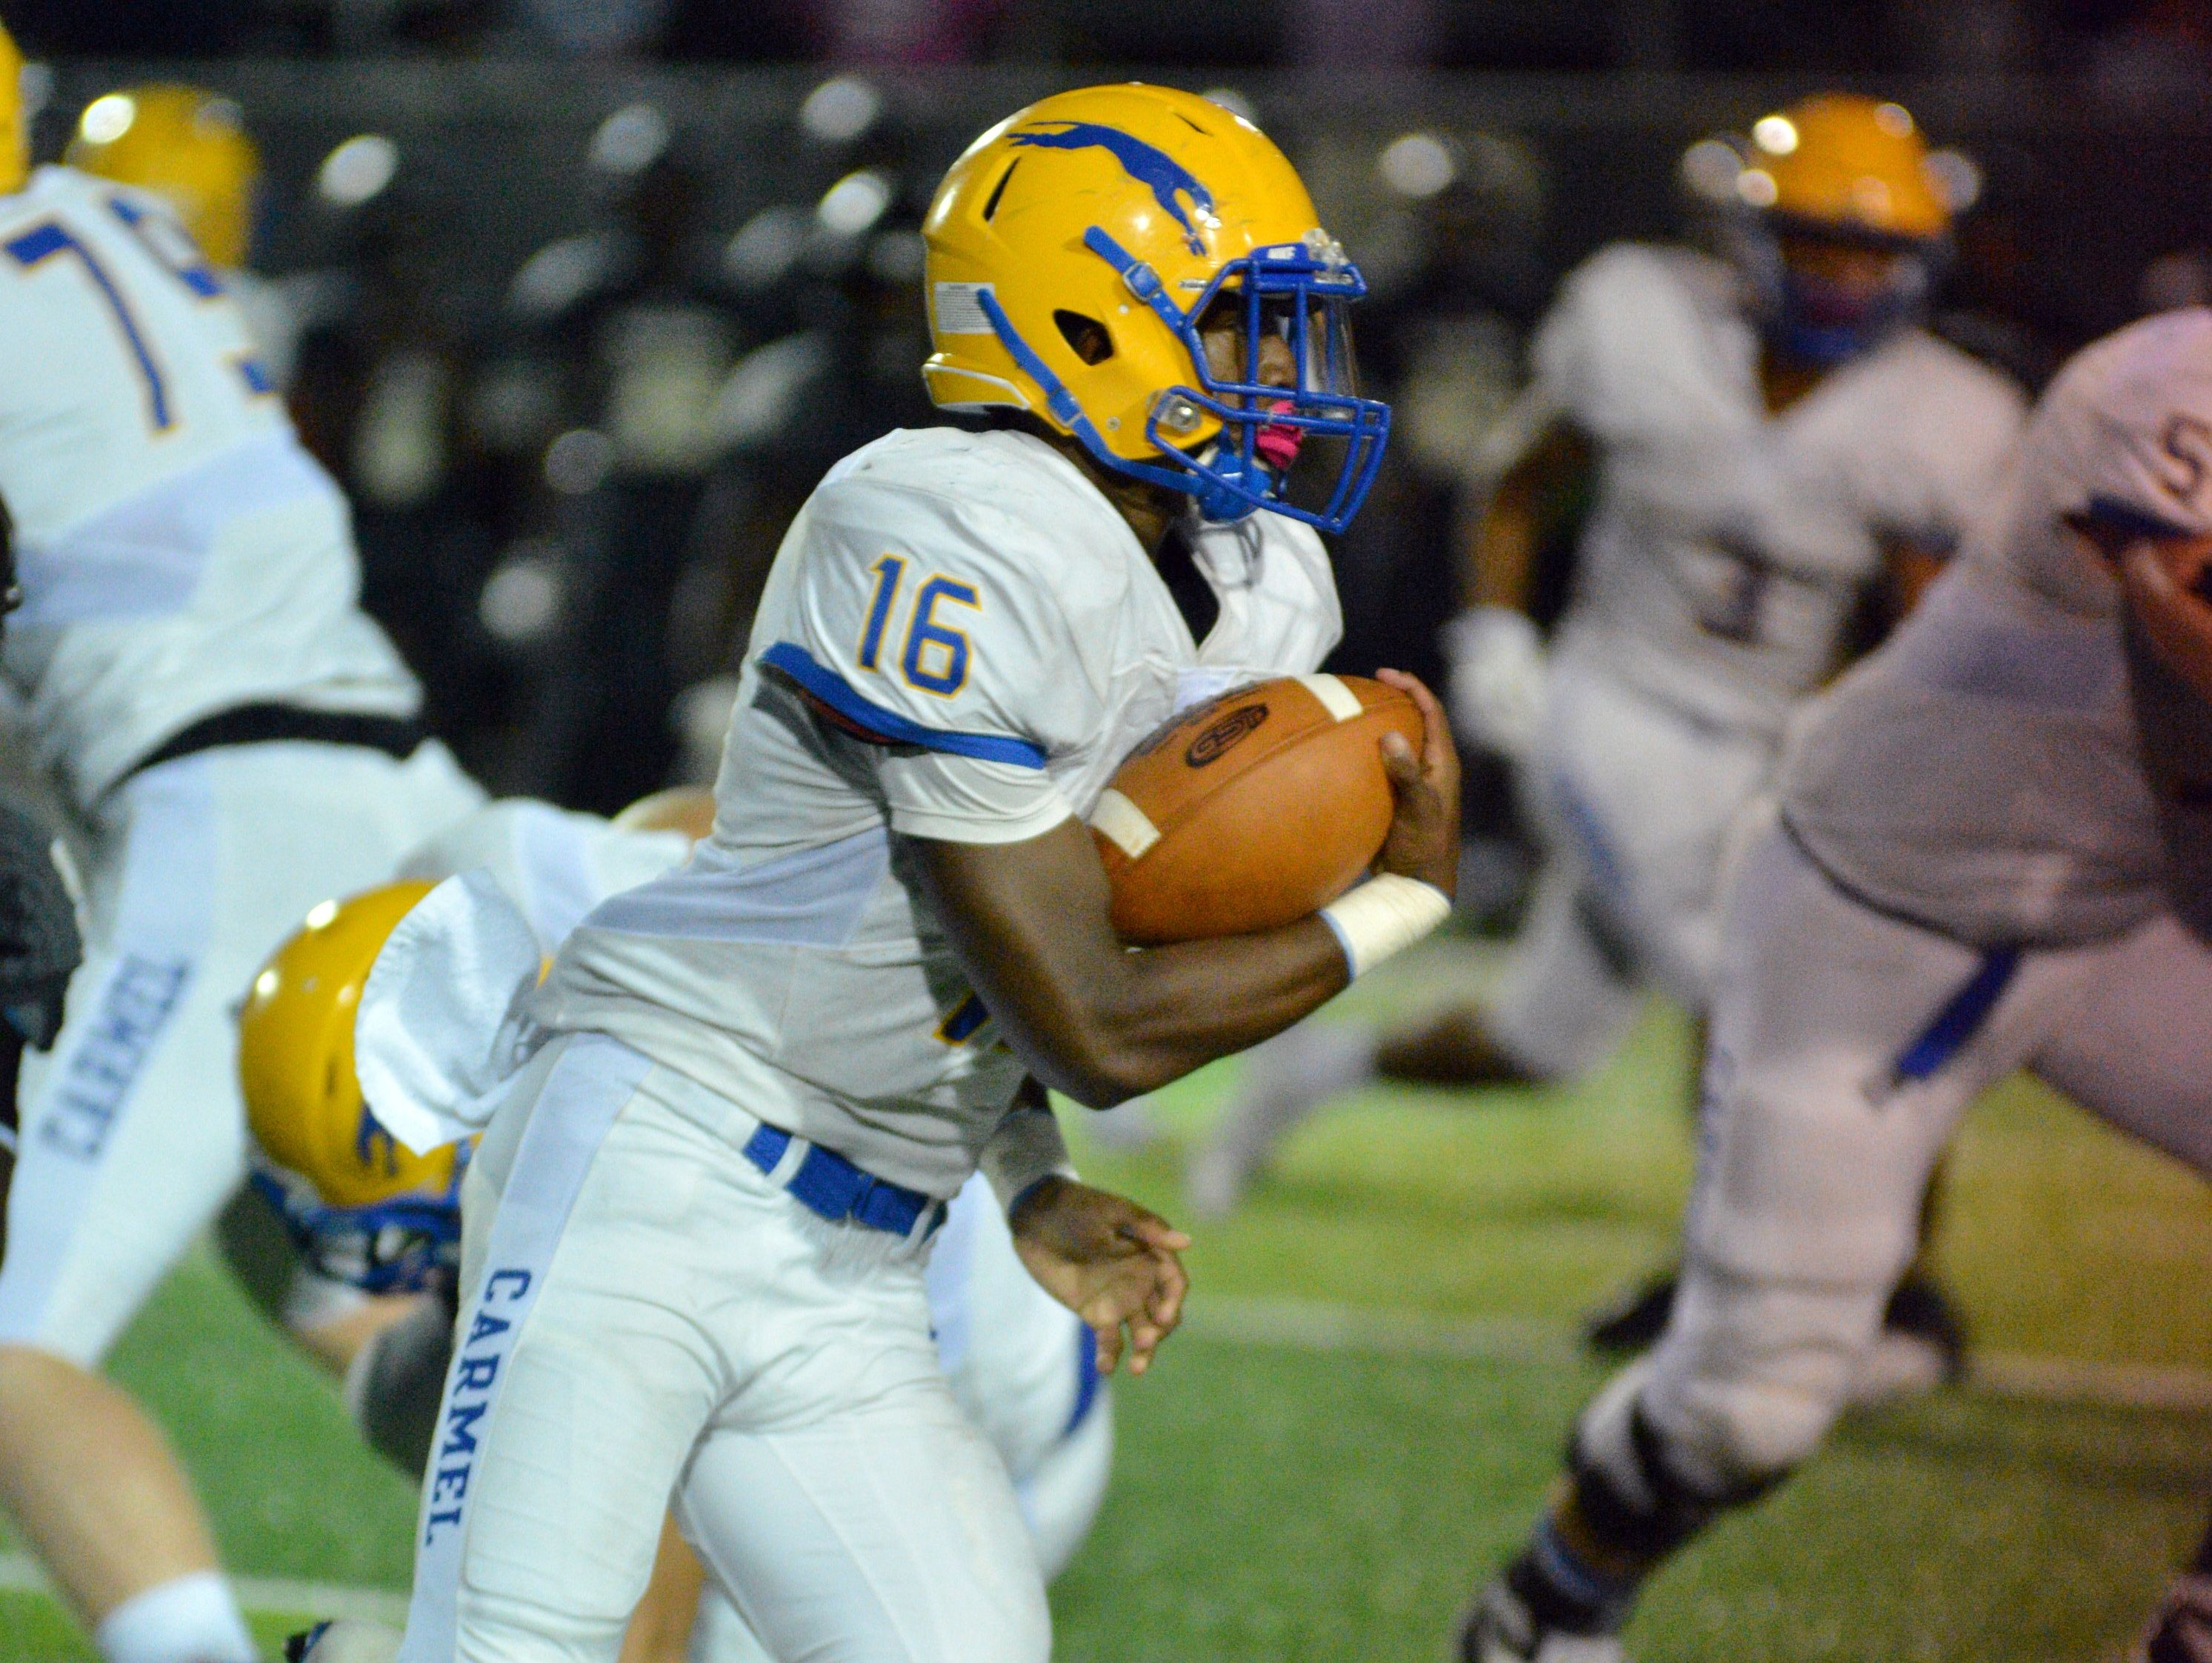 Camari Hunt leads Class 6A No. 9 Carmel into tonight's MIC Network Game of the Week against No. 12 Lawrence Central.